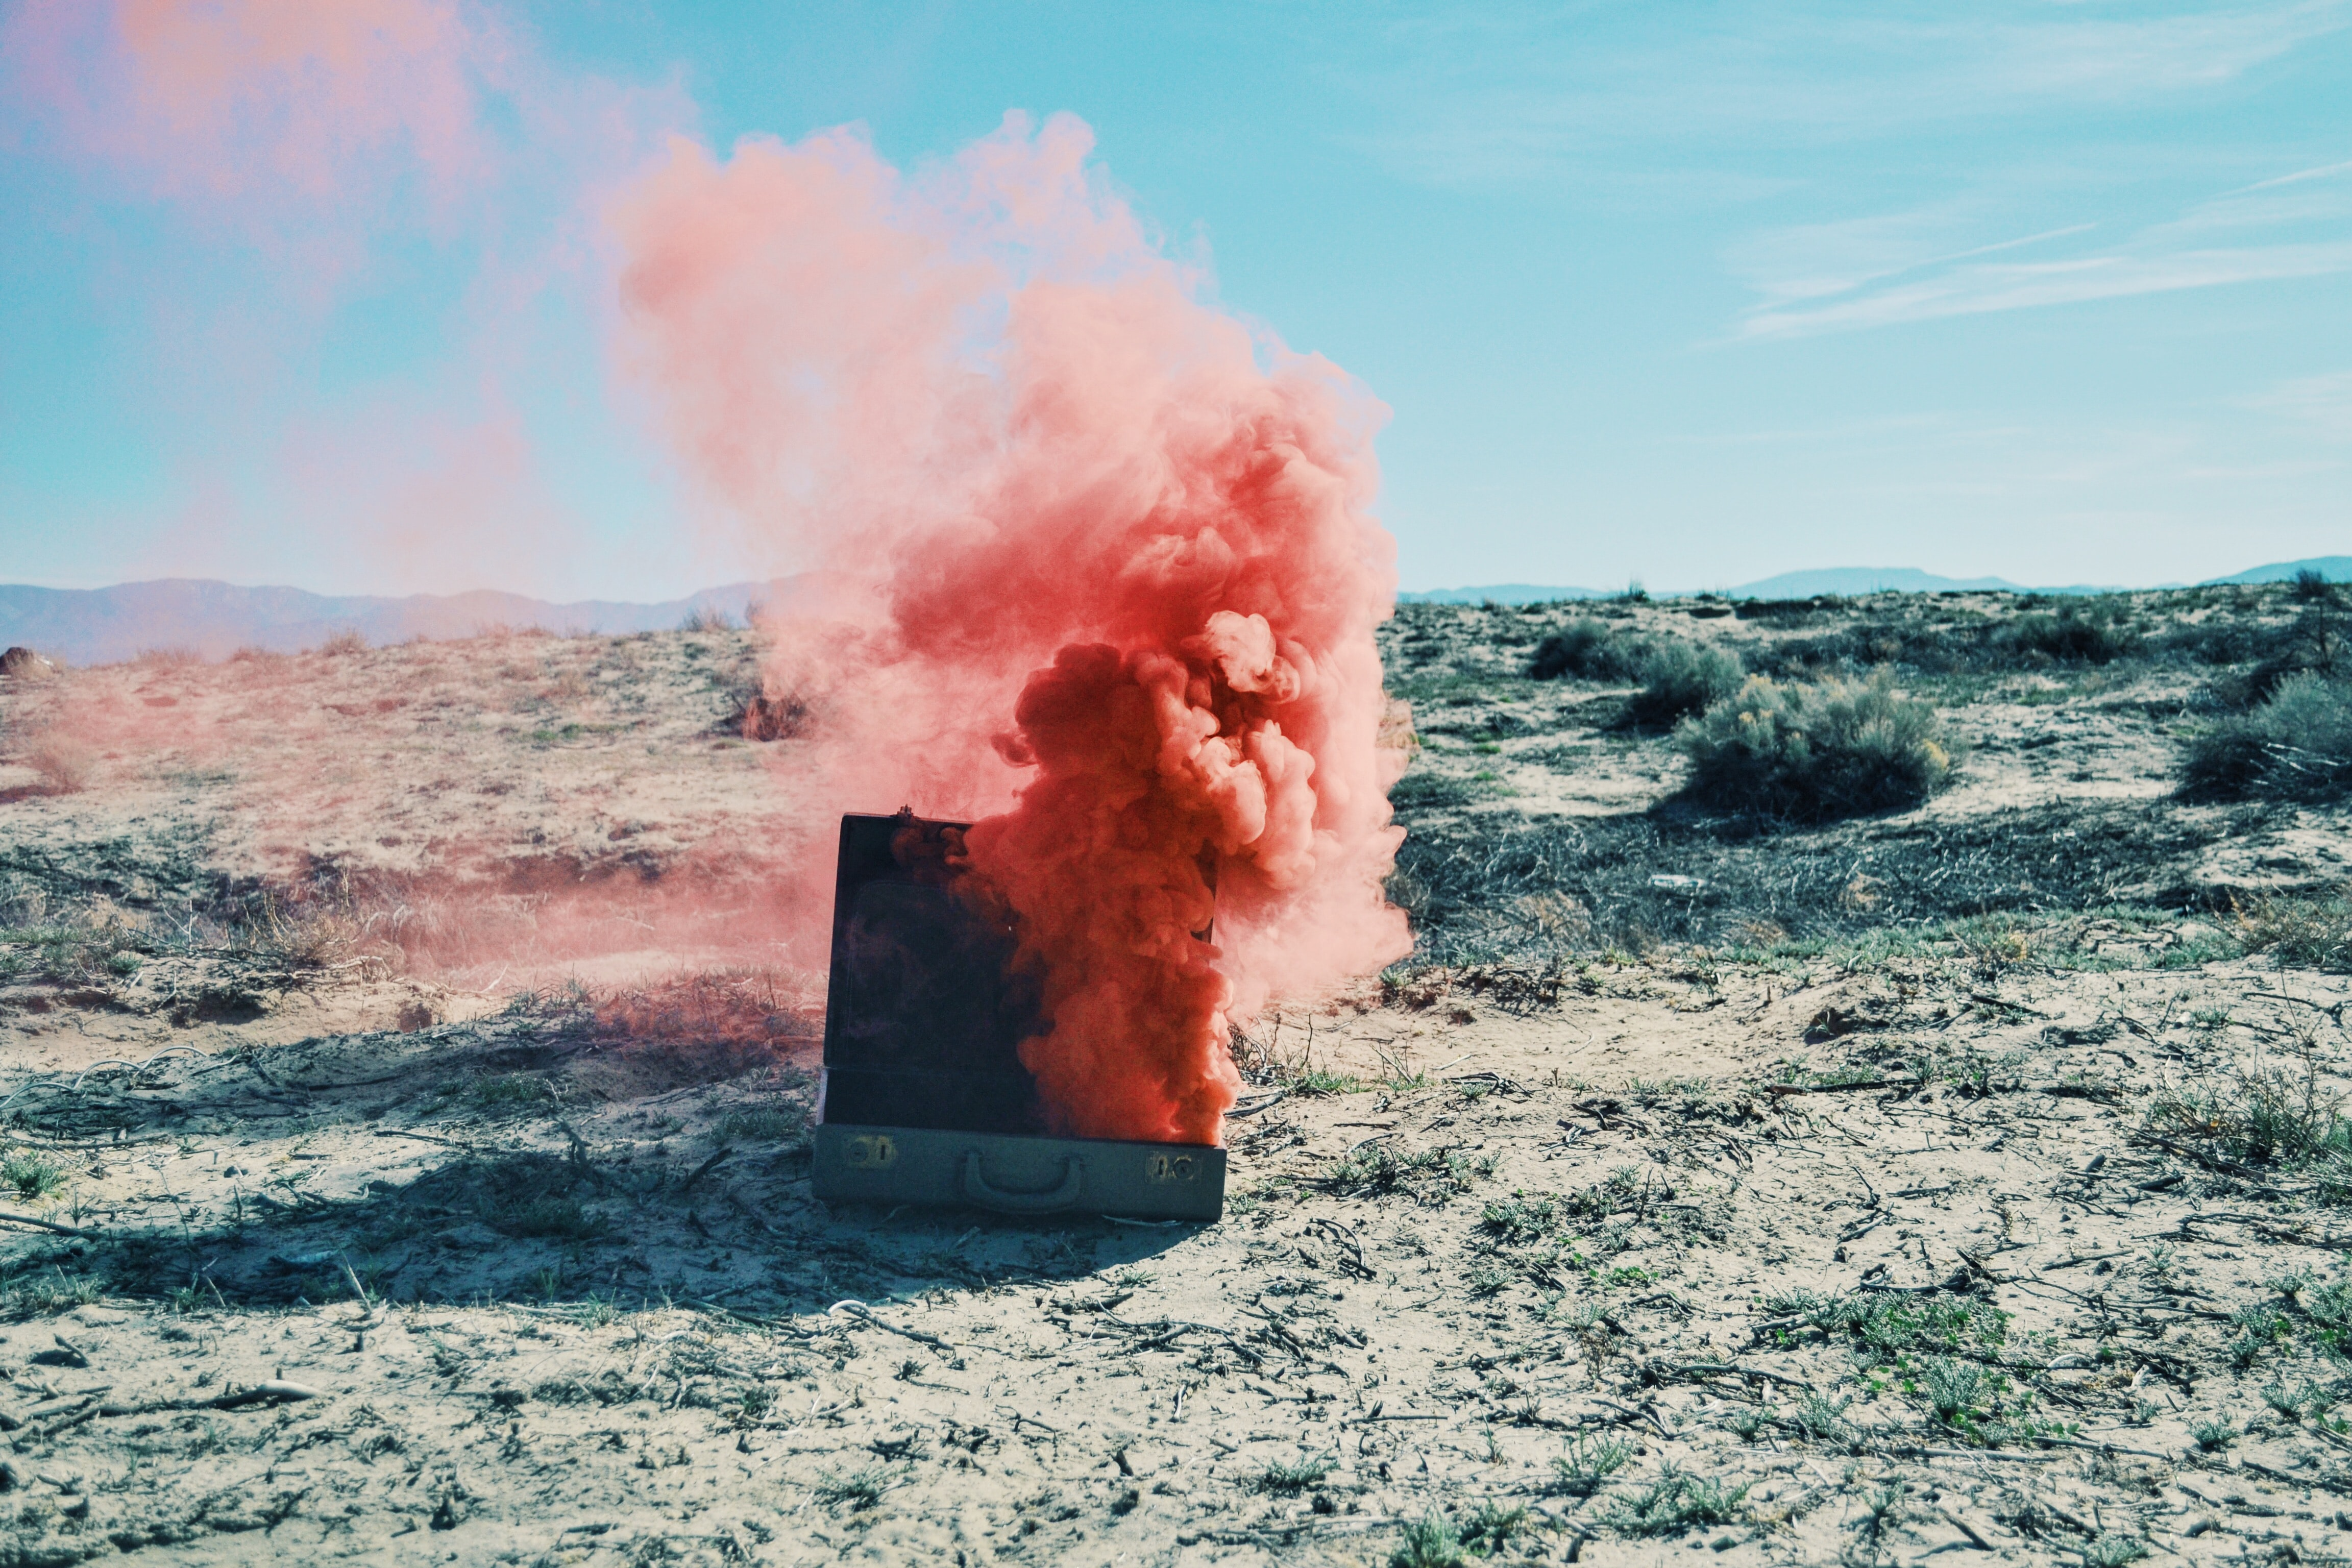 Red smoke billows from a suitcase in a sandy desert